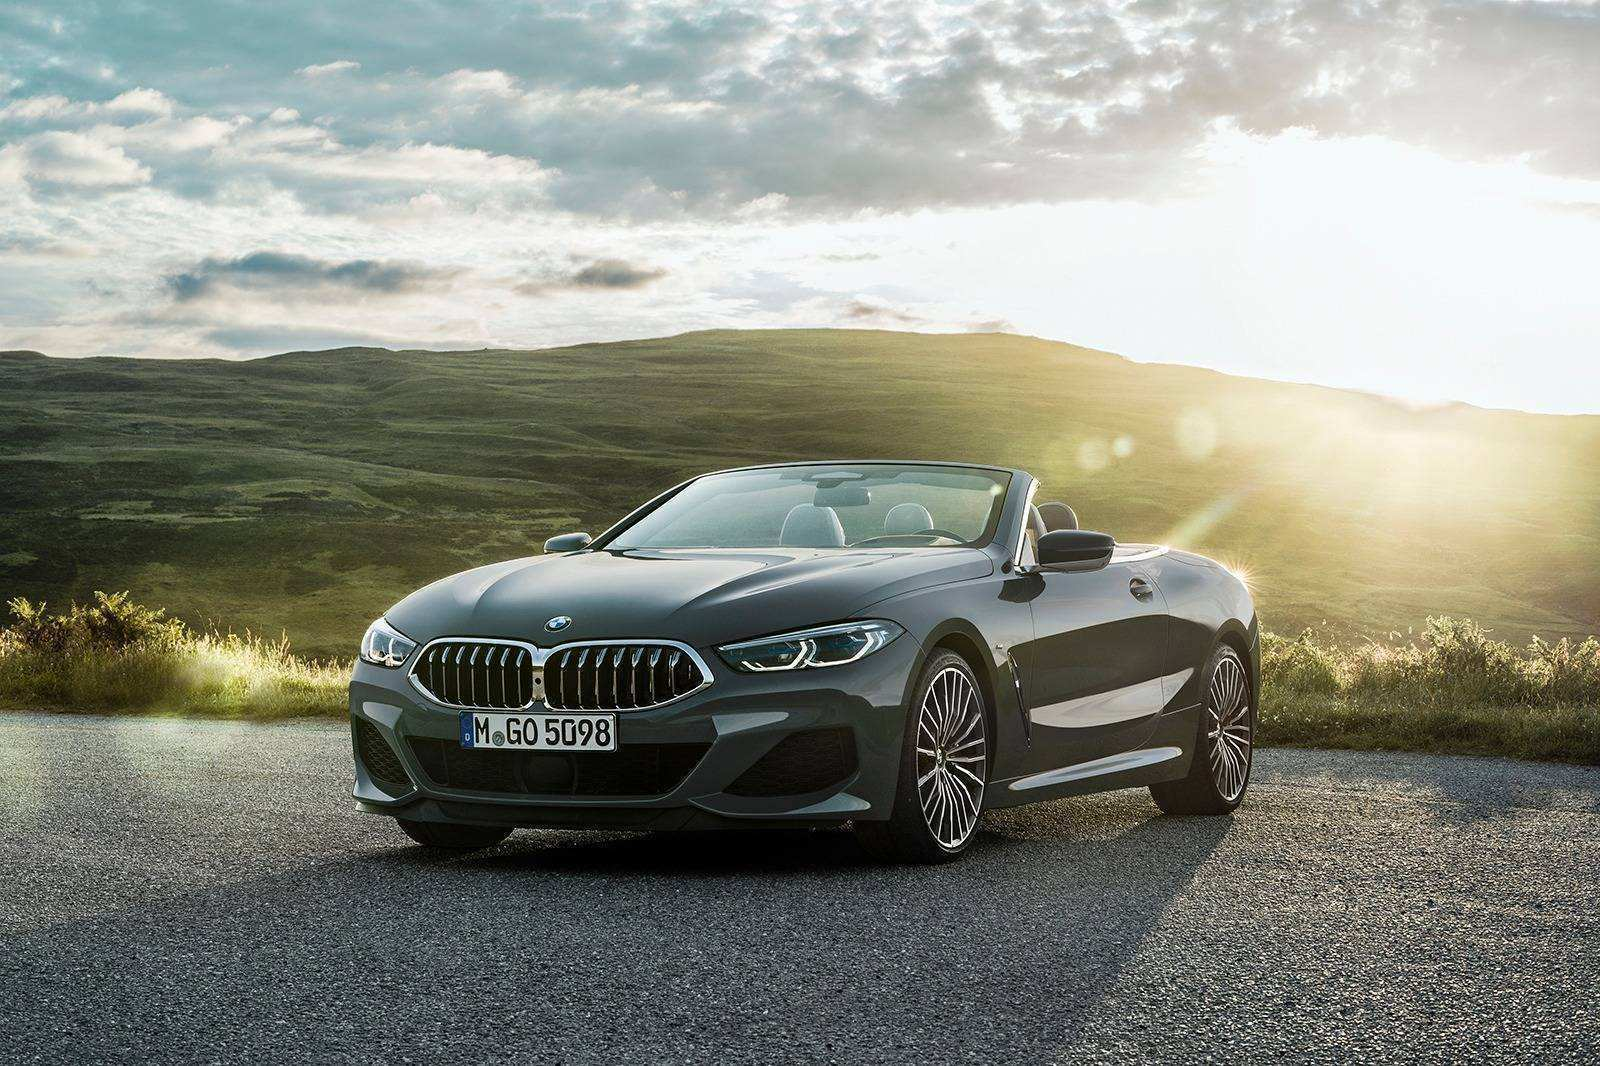 87 Great 2019 Bmw 8 Series Interior Performance and New Engine with 2019 Bmw 8 Series Interior